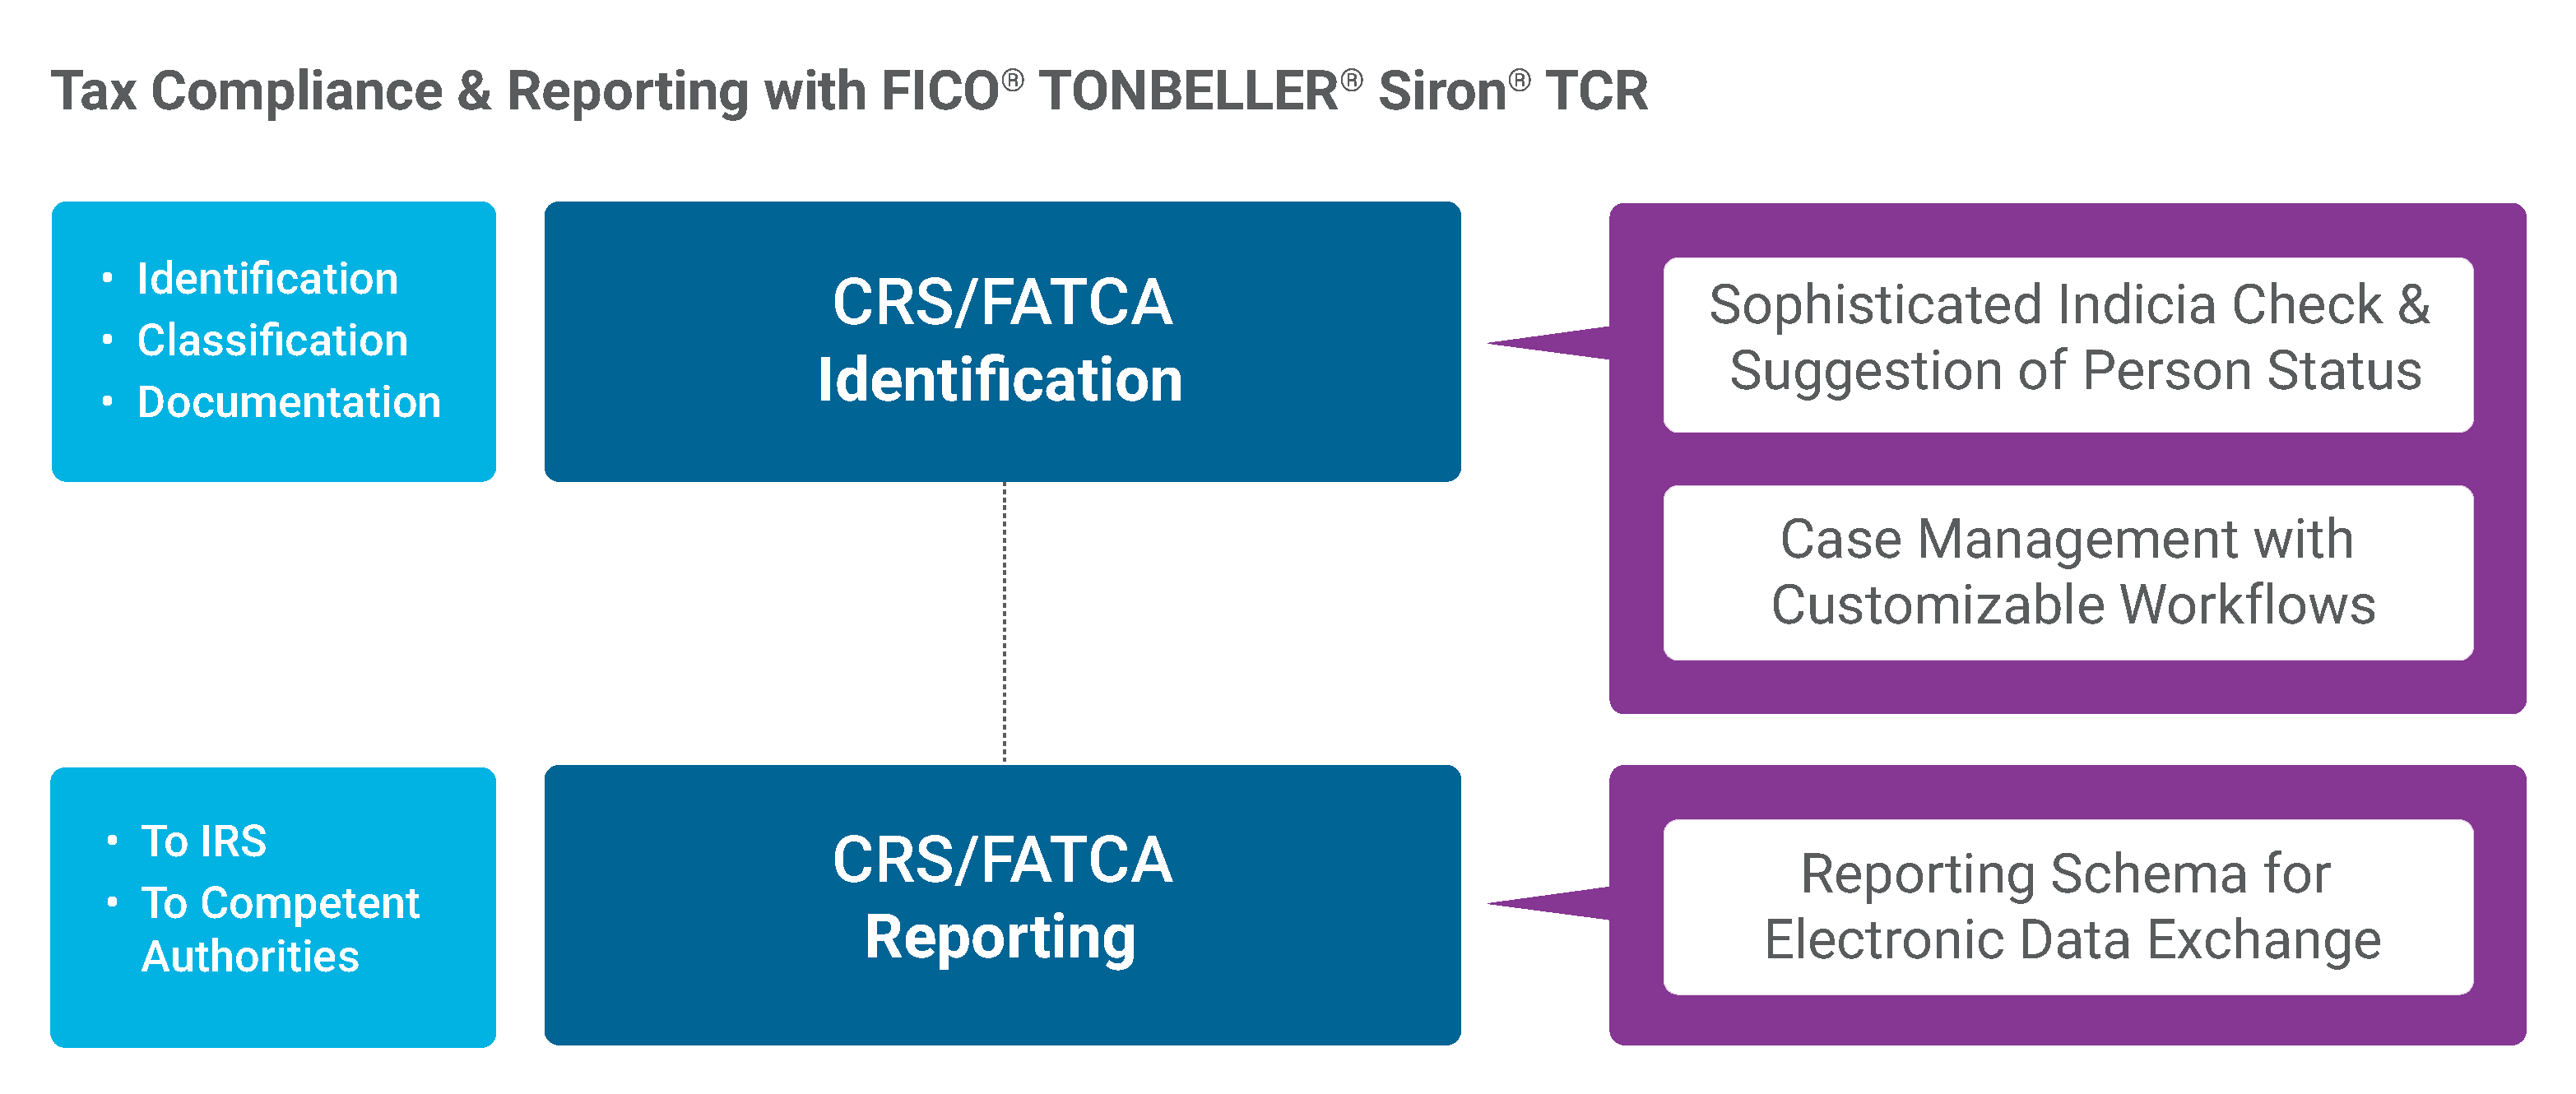 FATCA & CRS Reporting Workflow with Siron